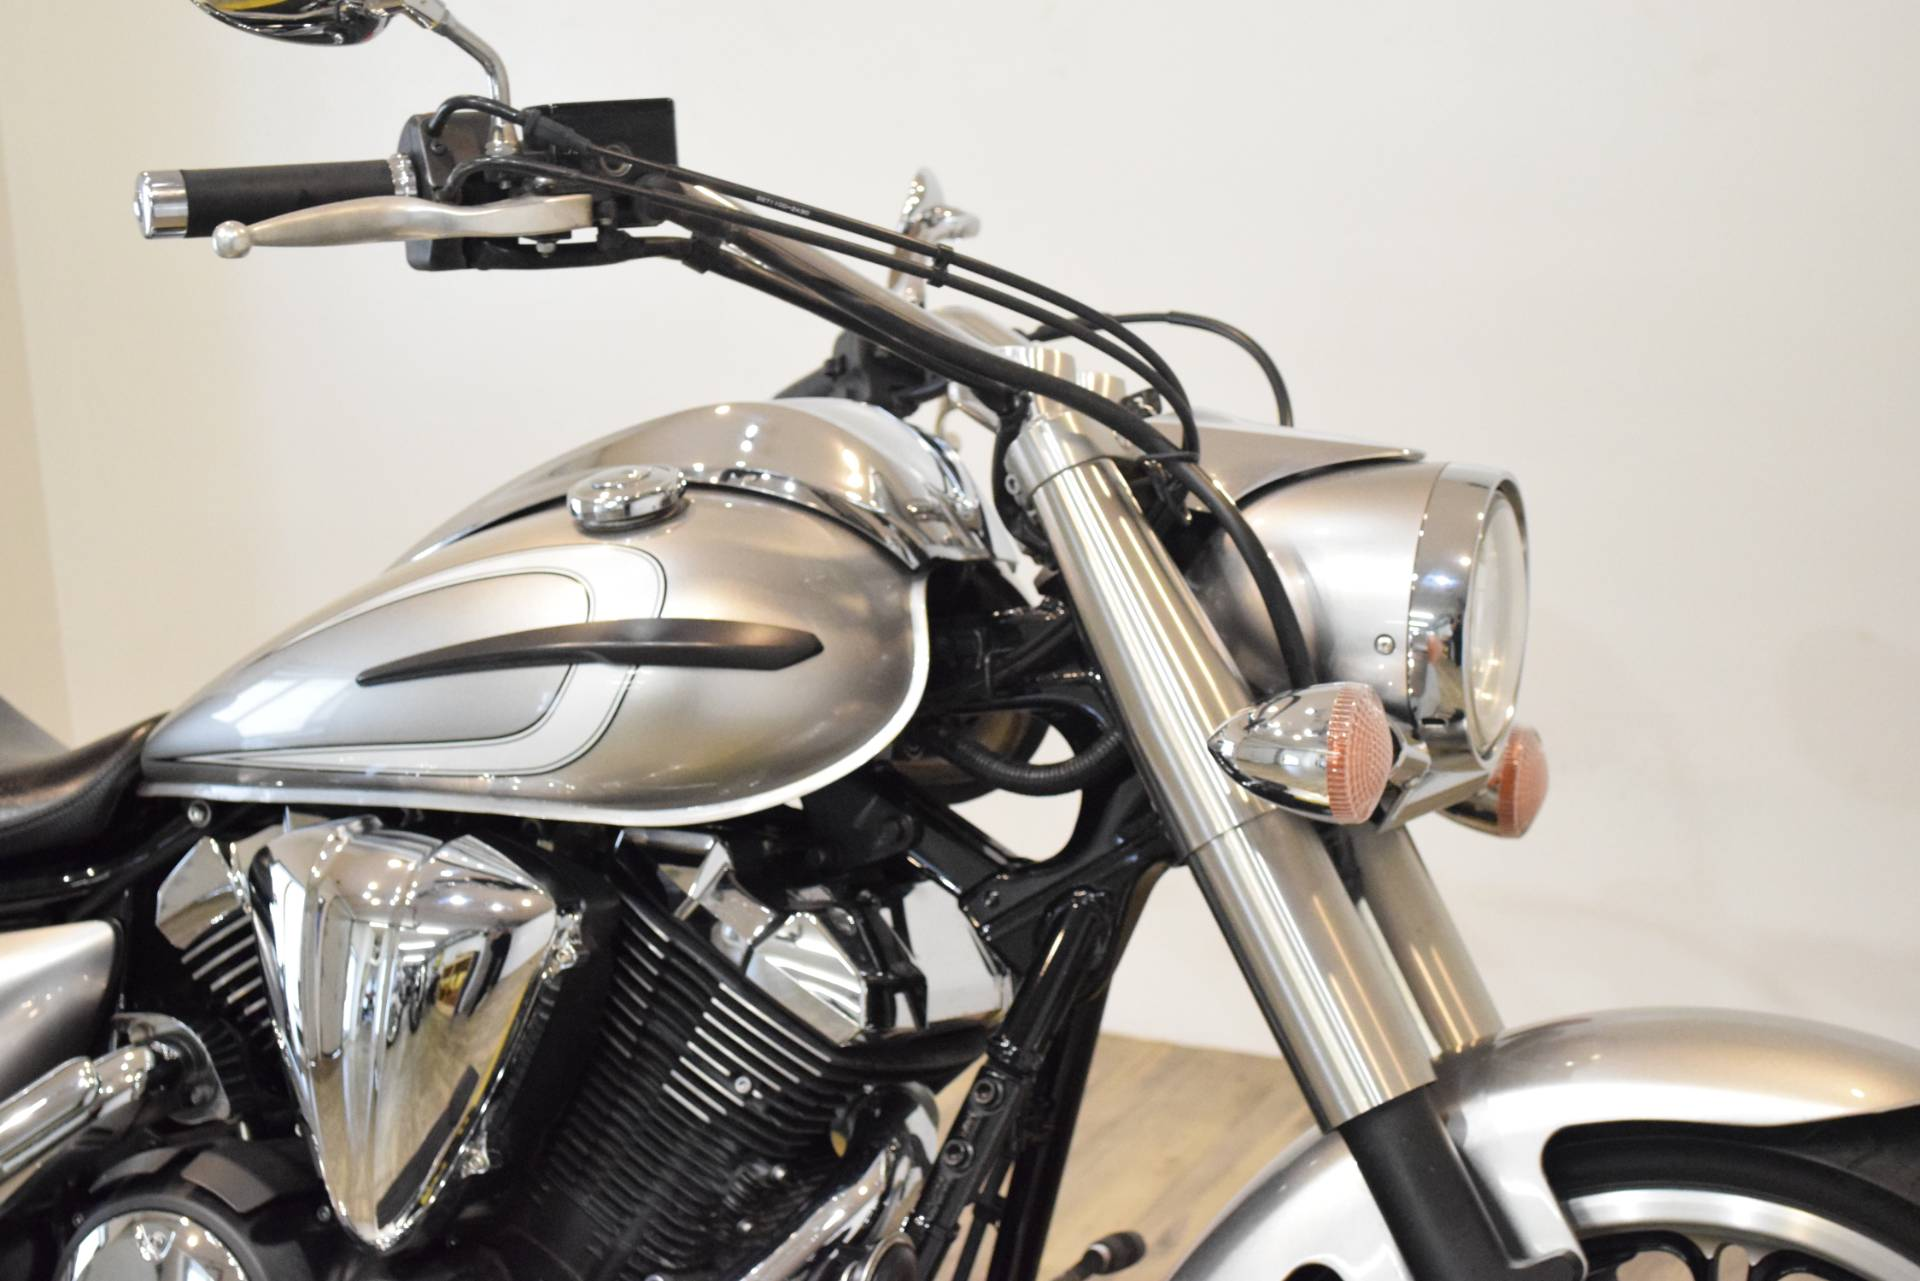 2012 Yamaha V Star 950  in Wauconda, Illinois - Photo 3